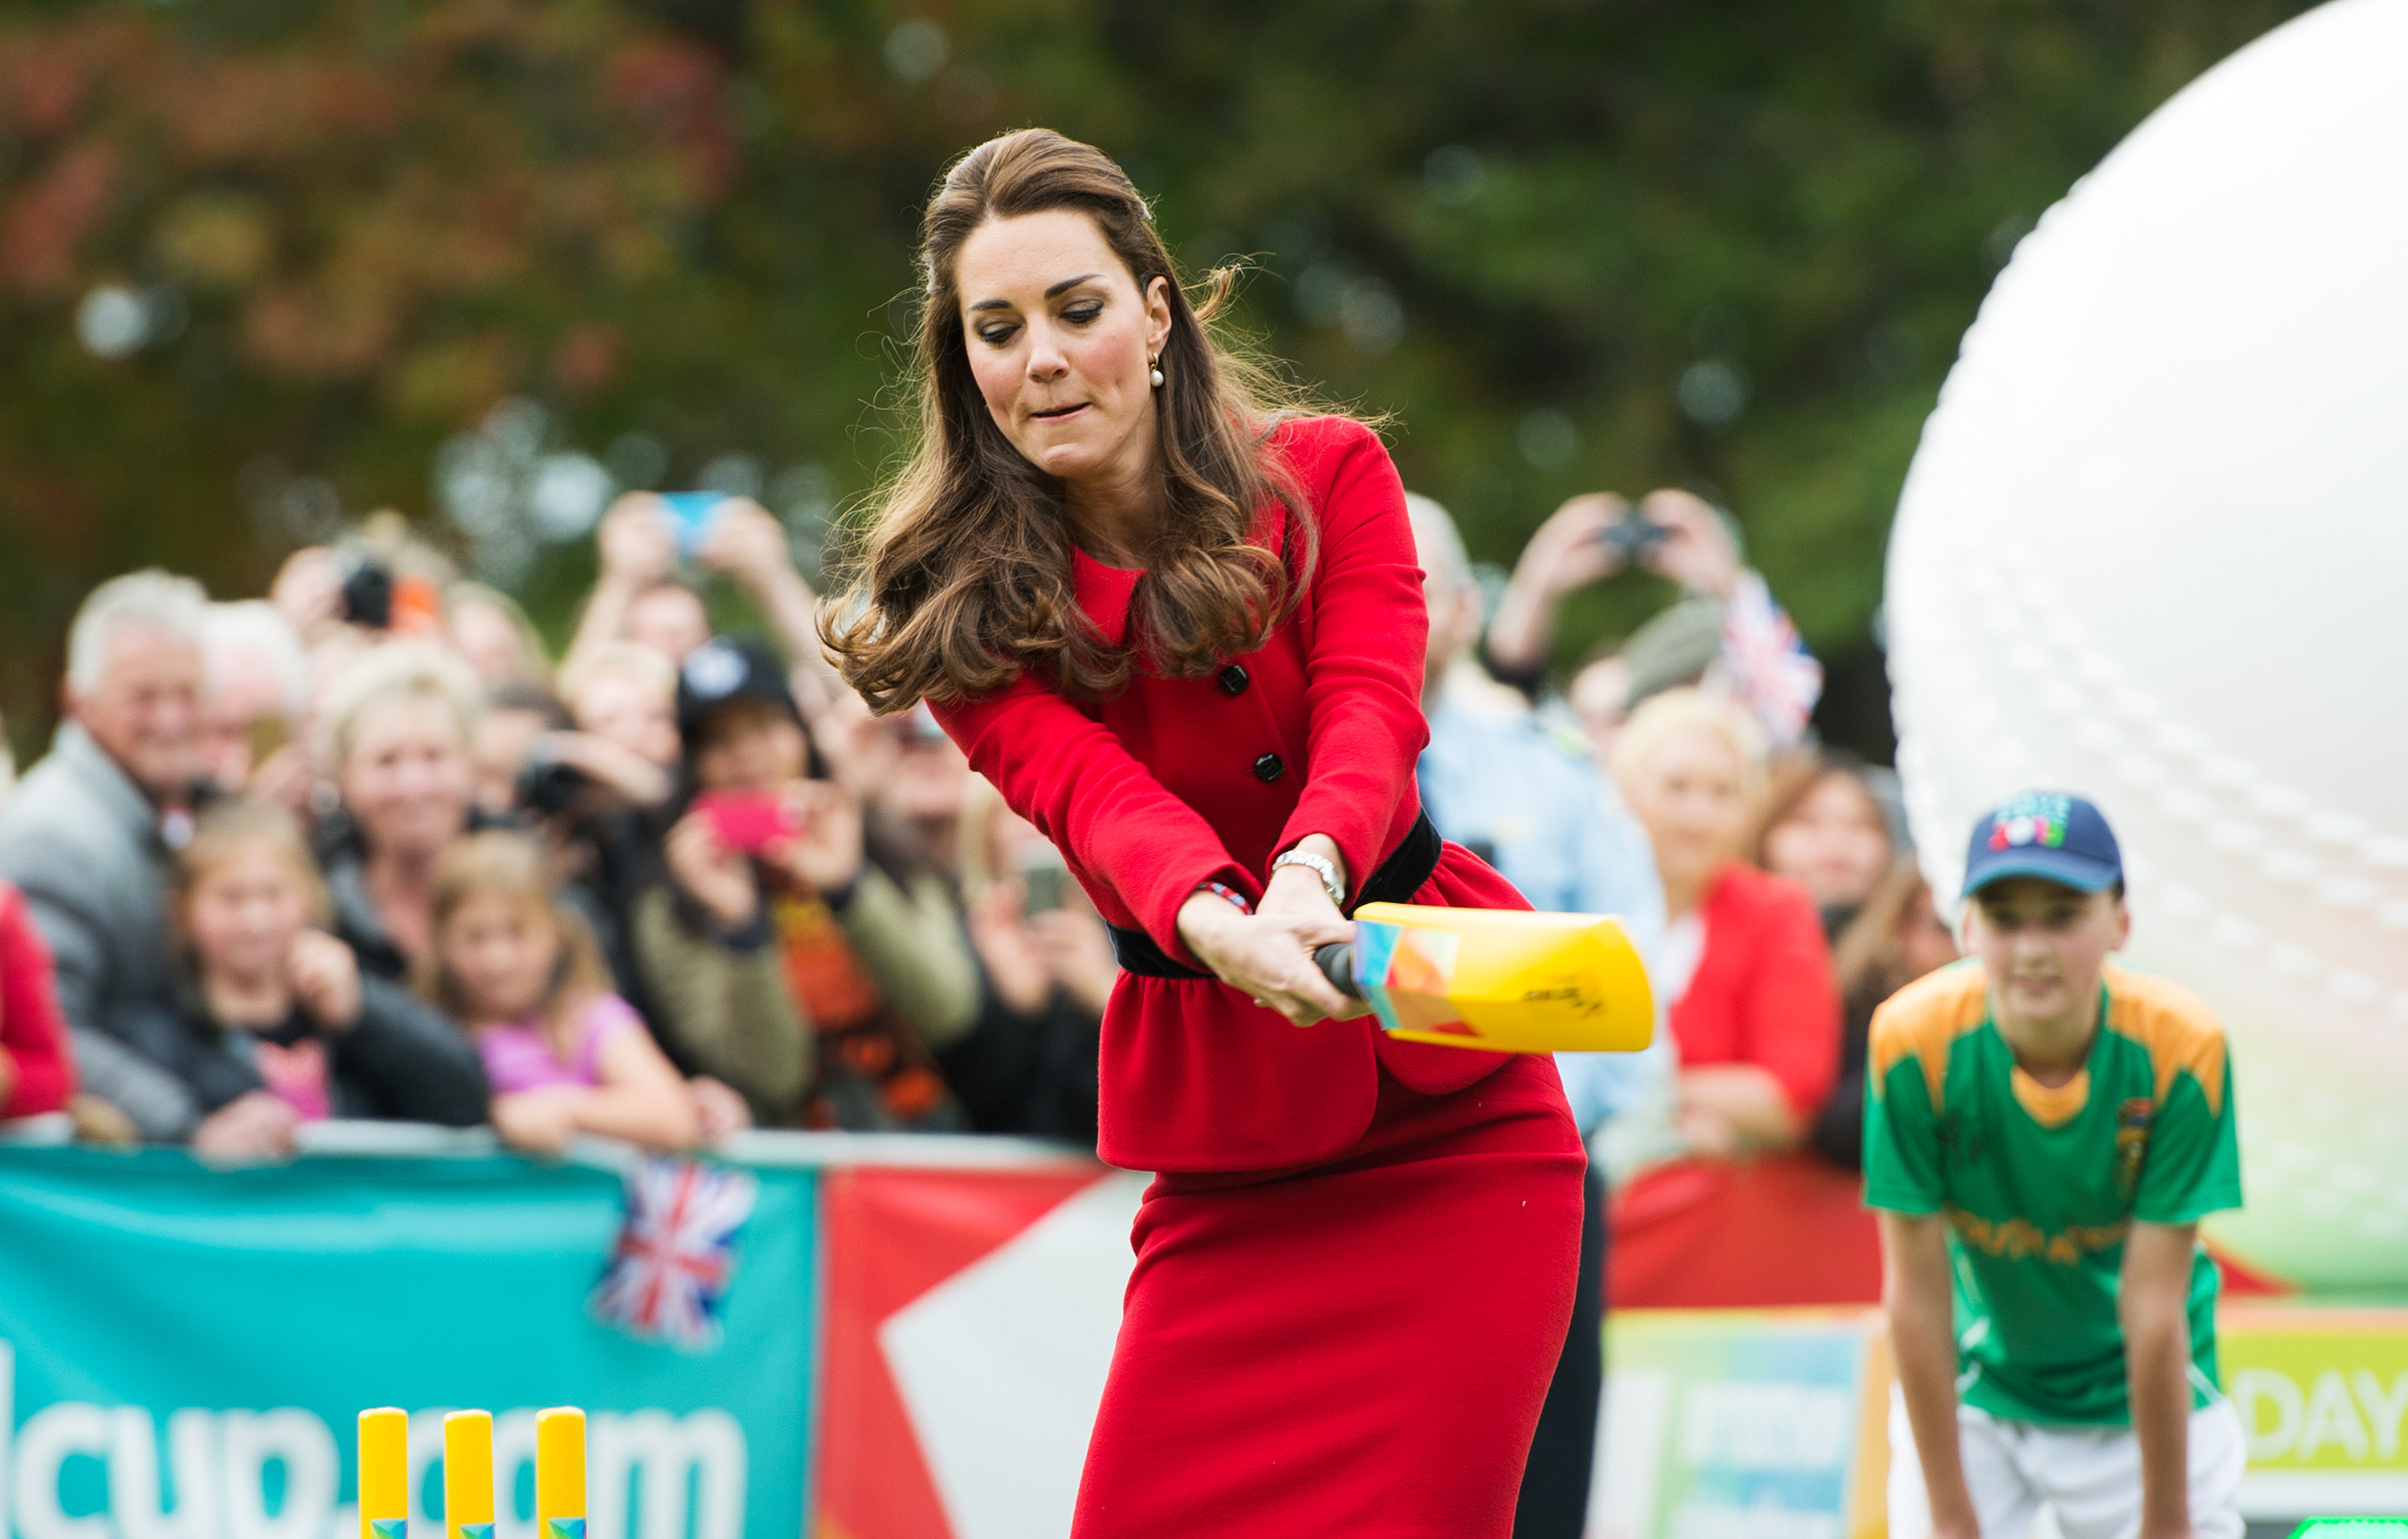 Catherine, Duchess of Cambridge bats during a game of cricket in Latimer Square on April 14, 2014 in Christchurch, New Zealand.